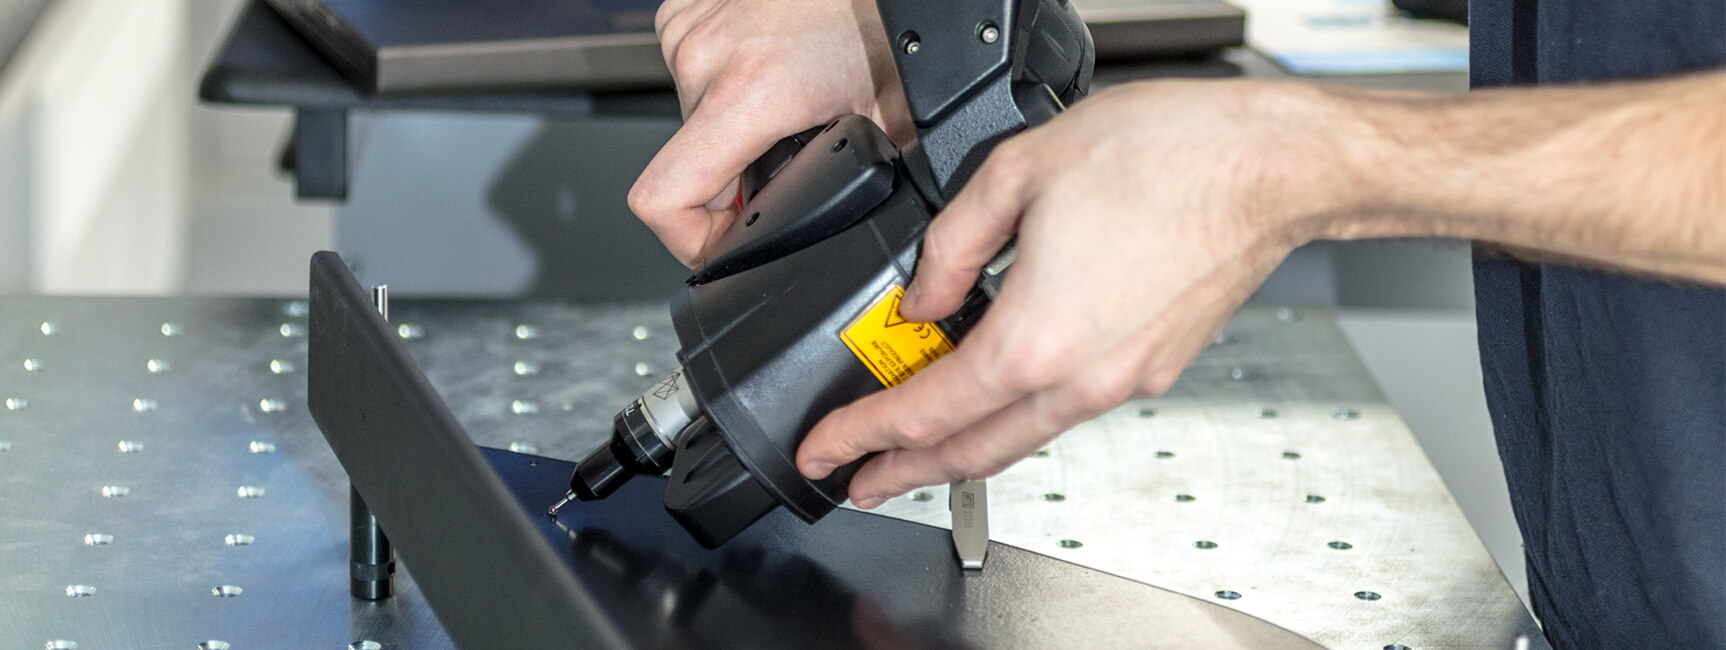 Man using tool on product